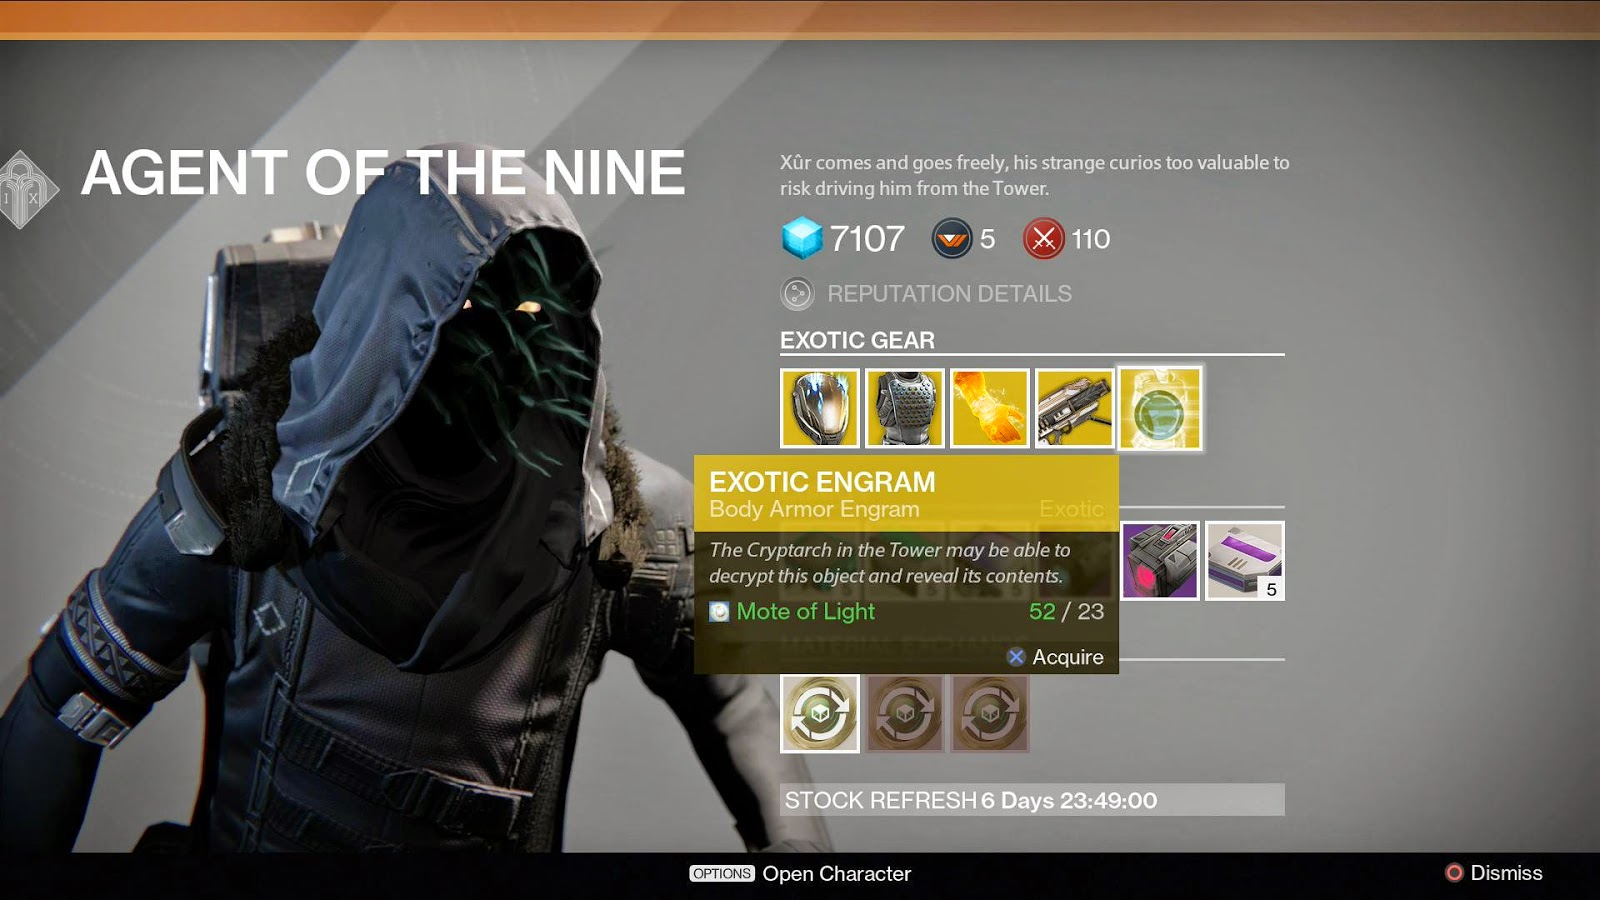 De nivel 110 agent of the nine from destiny in destiny xur is a hooded